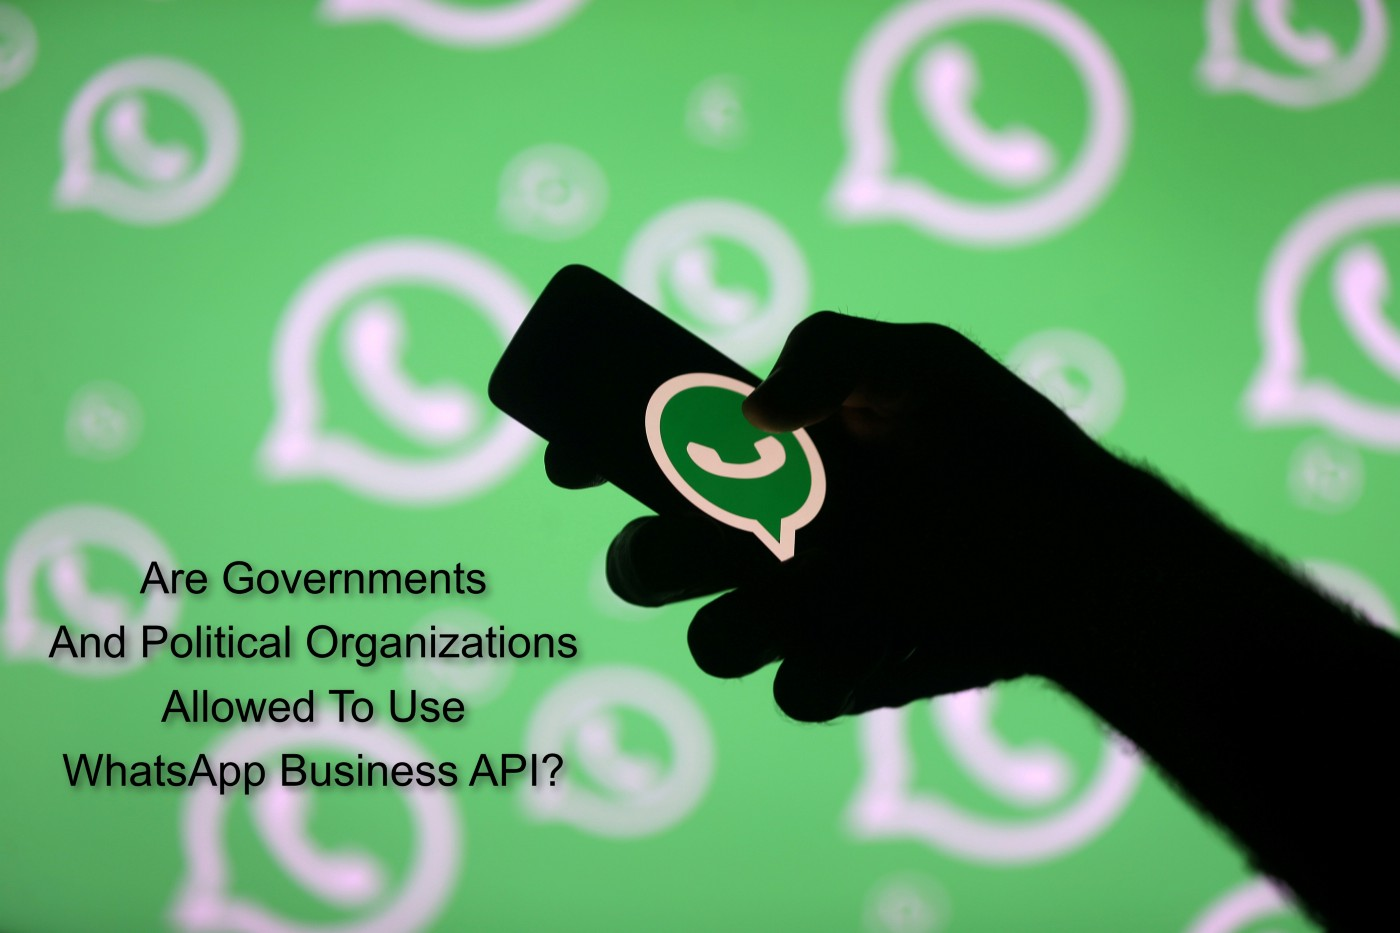 How to use WhatsApp Business API - List of Unique Use